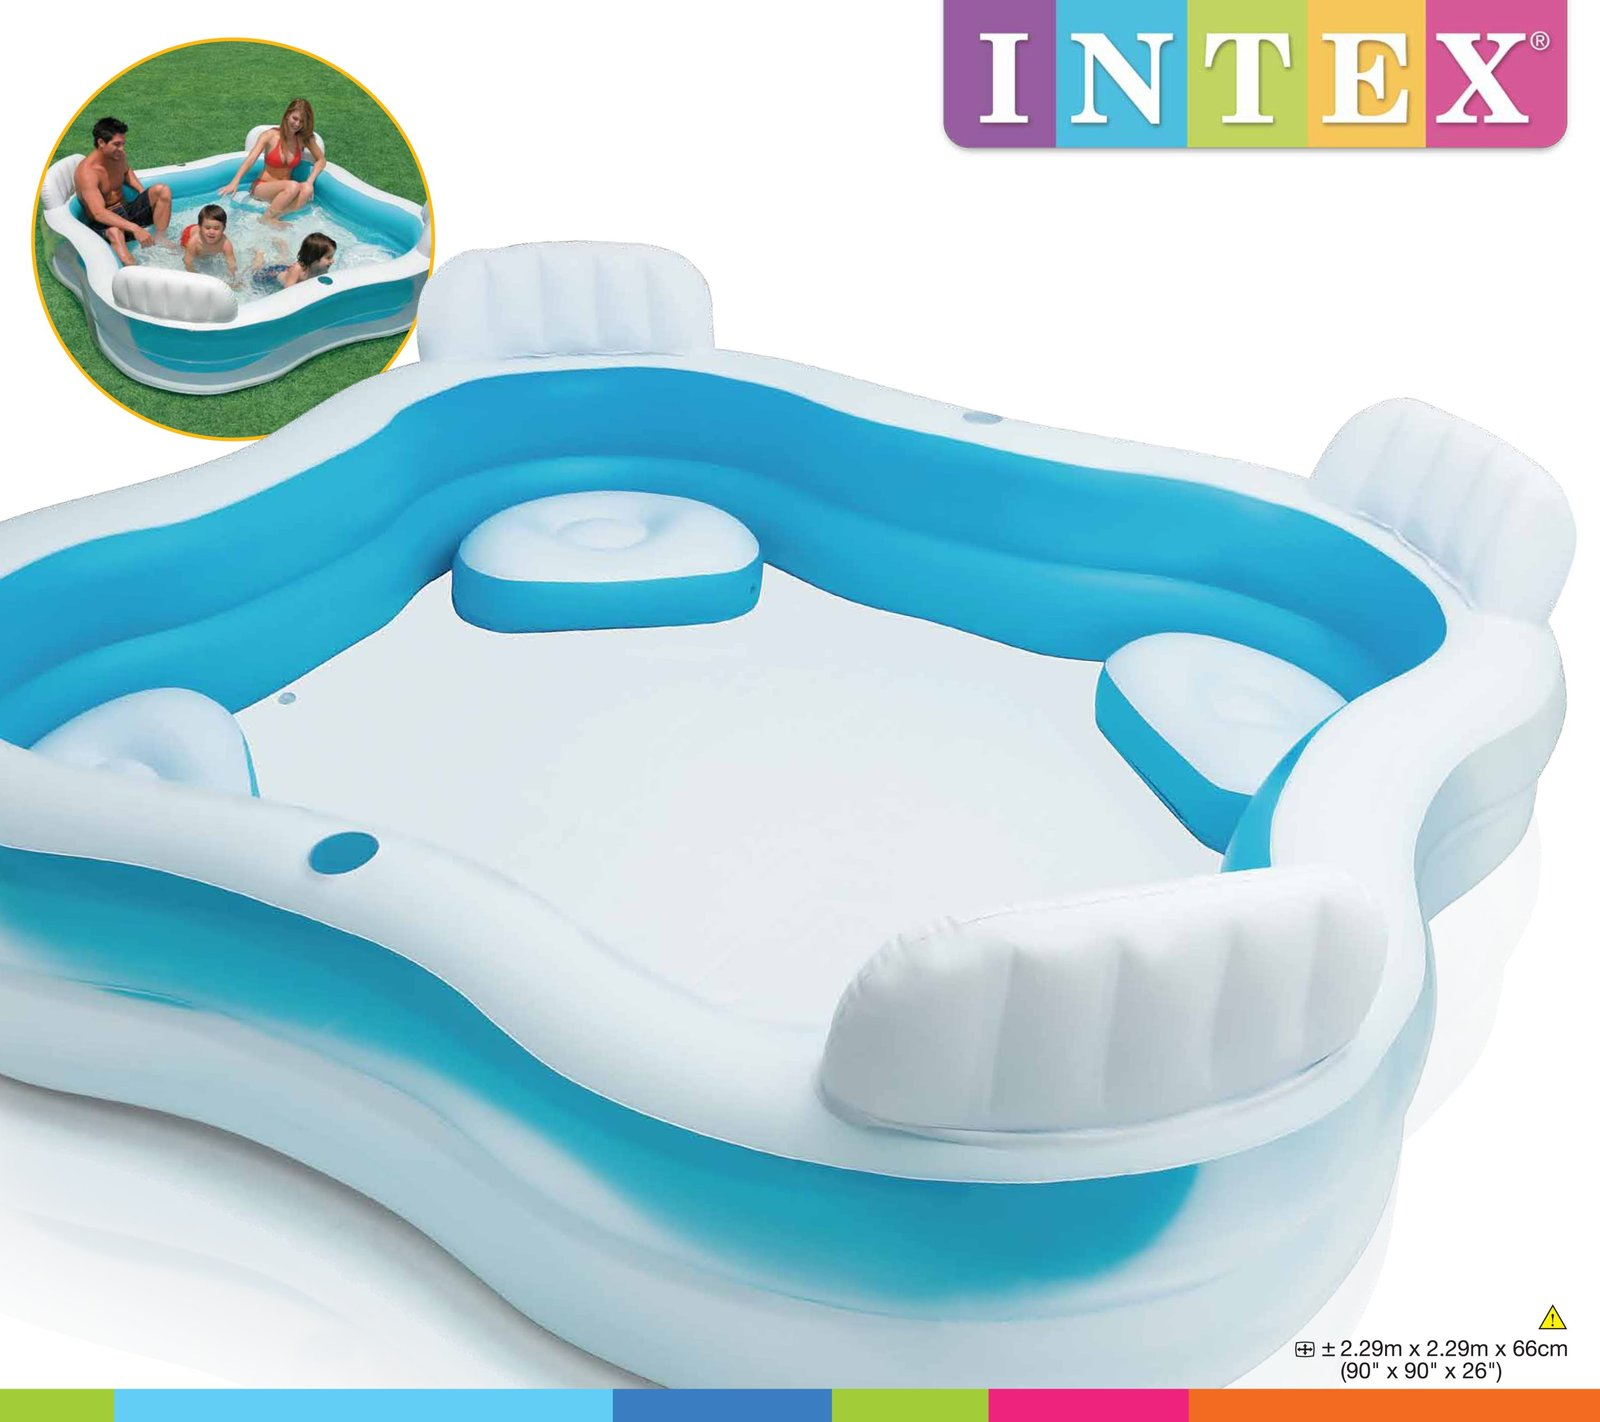 Intex Swim Center Family Lounge Inflatable Pool Images At Mighty